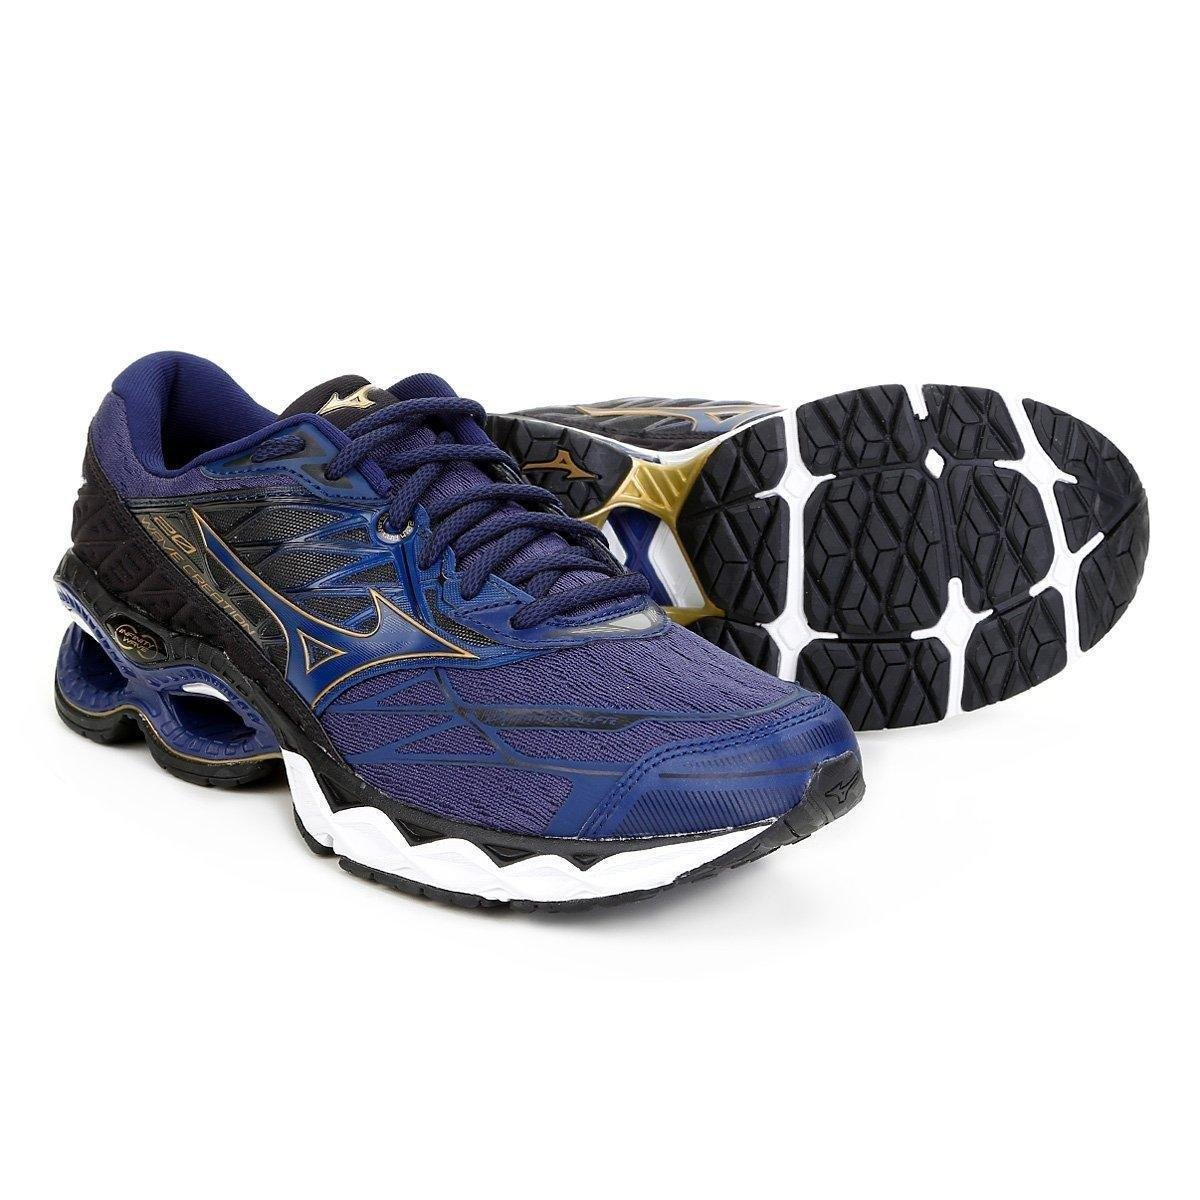 45c72e110 Tênis Mizuno Wave Creation 20 Masculino